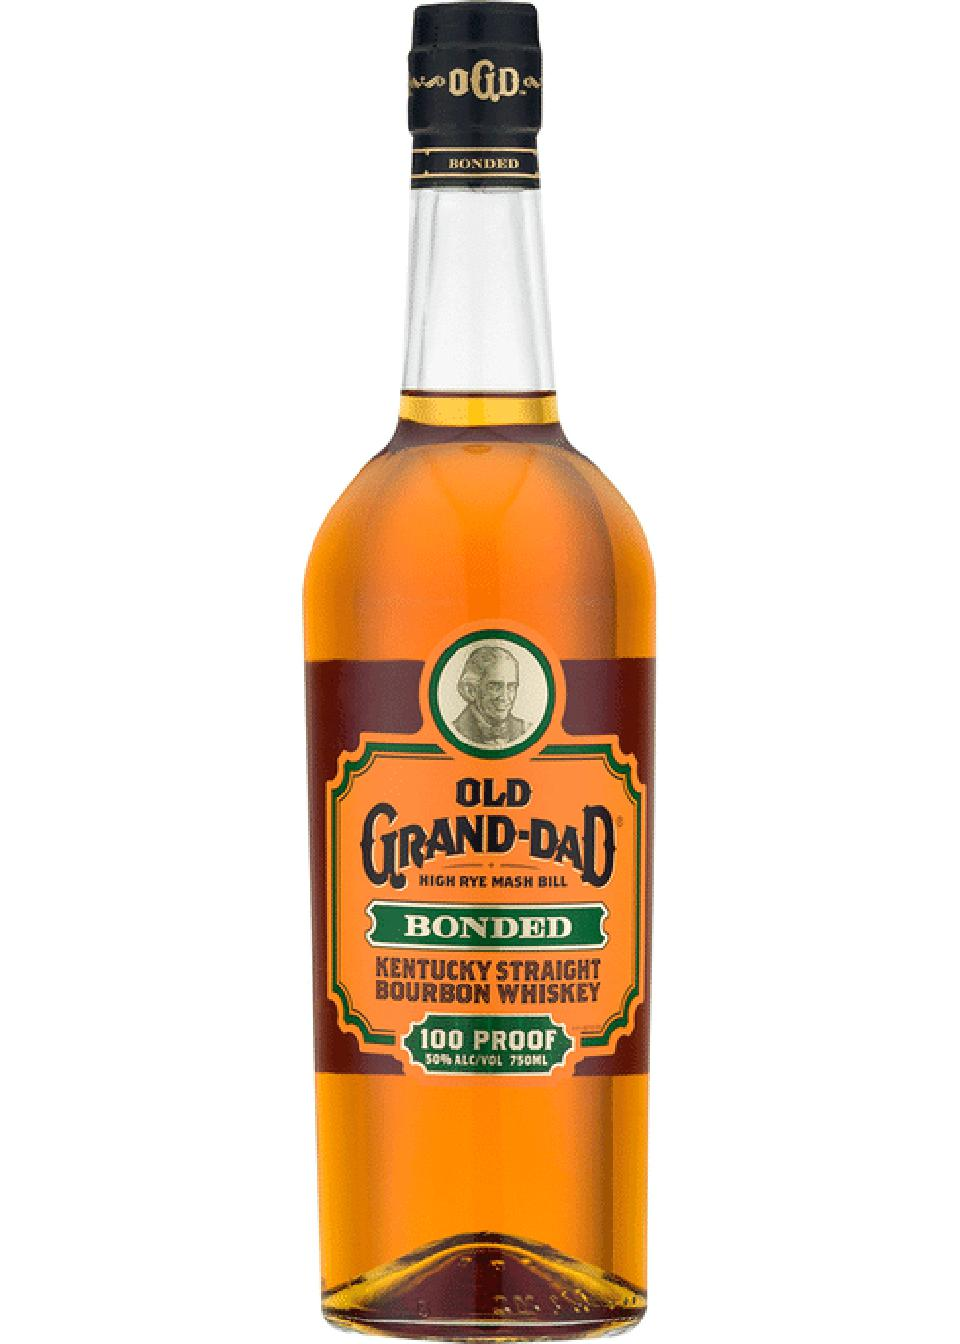 Old Grand-Dad is made by Beam Suntory.